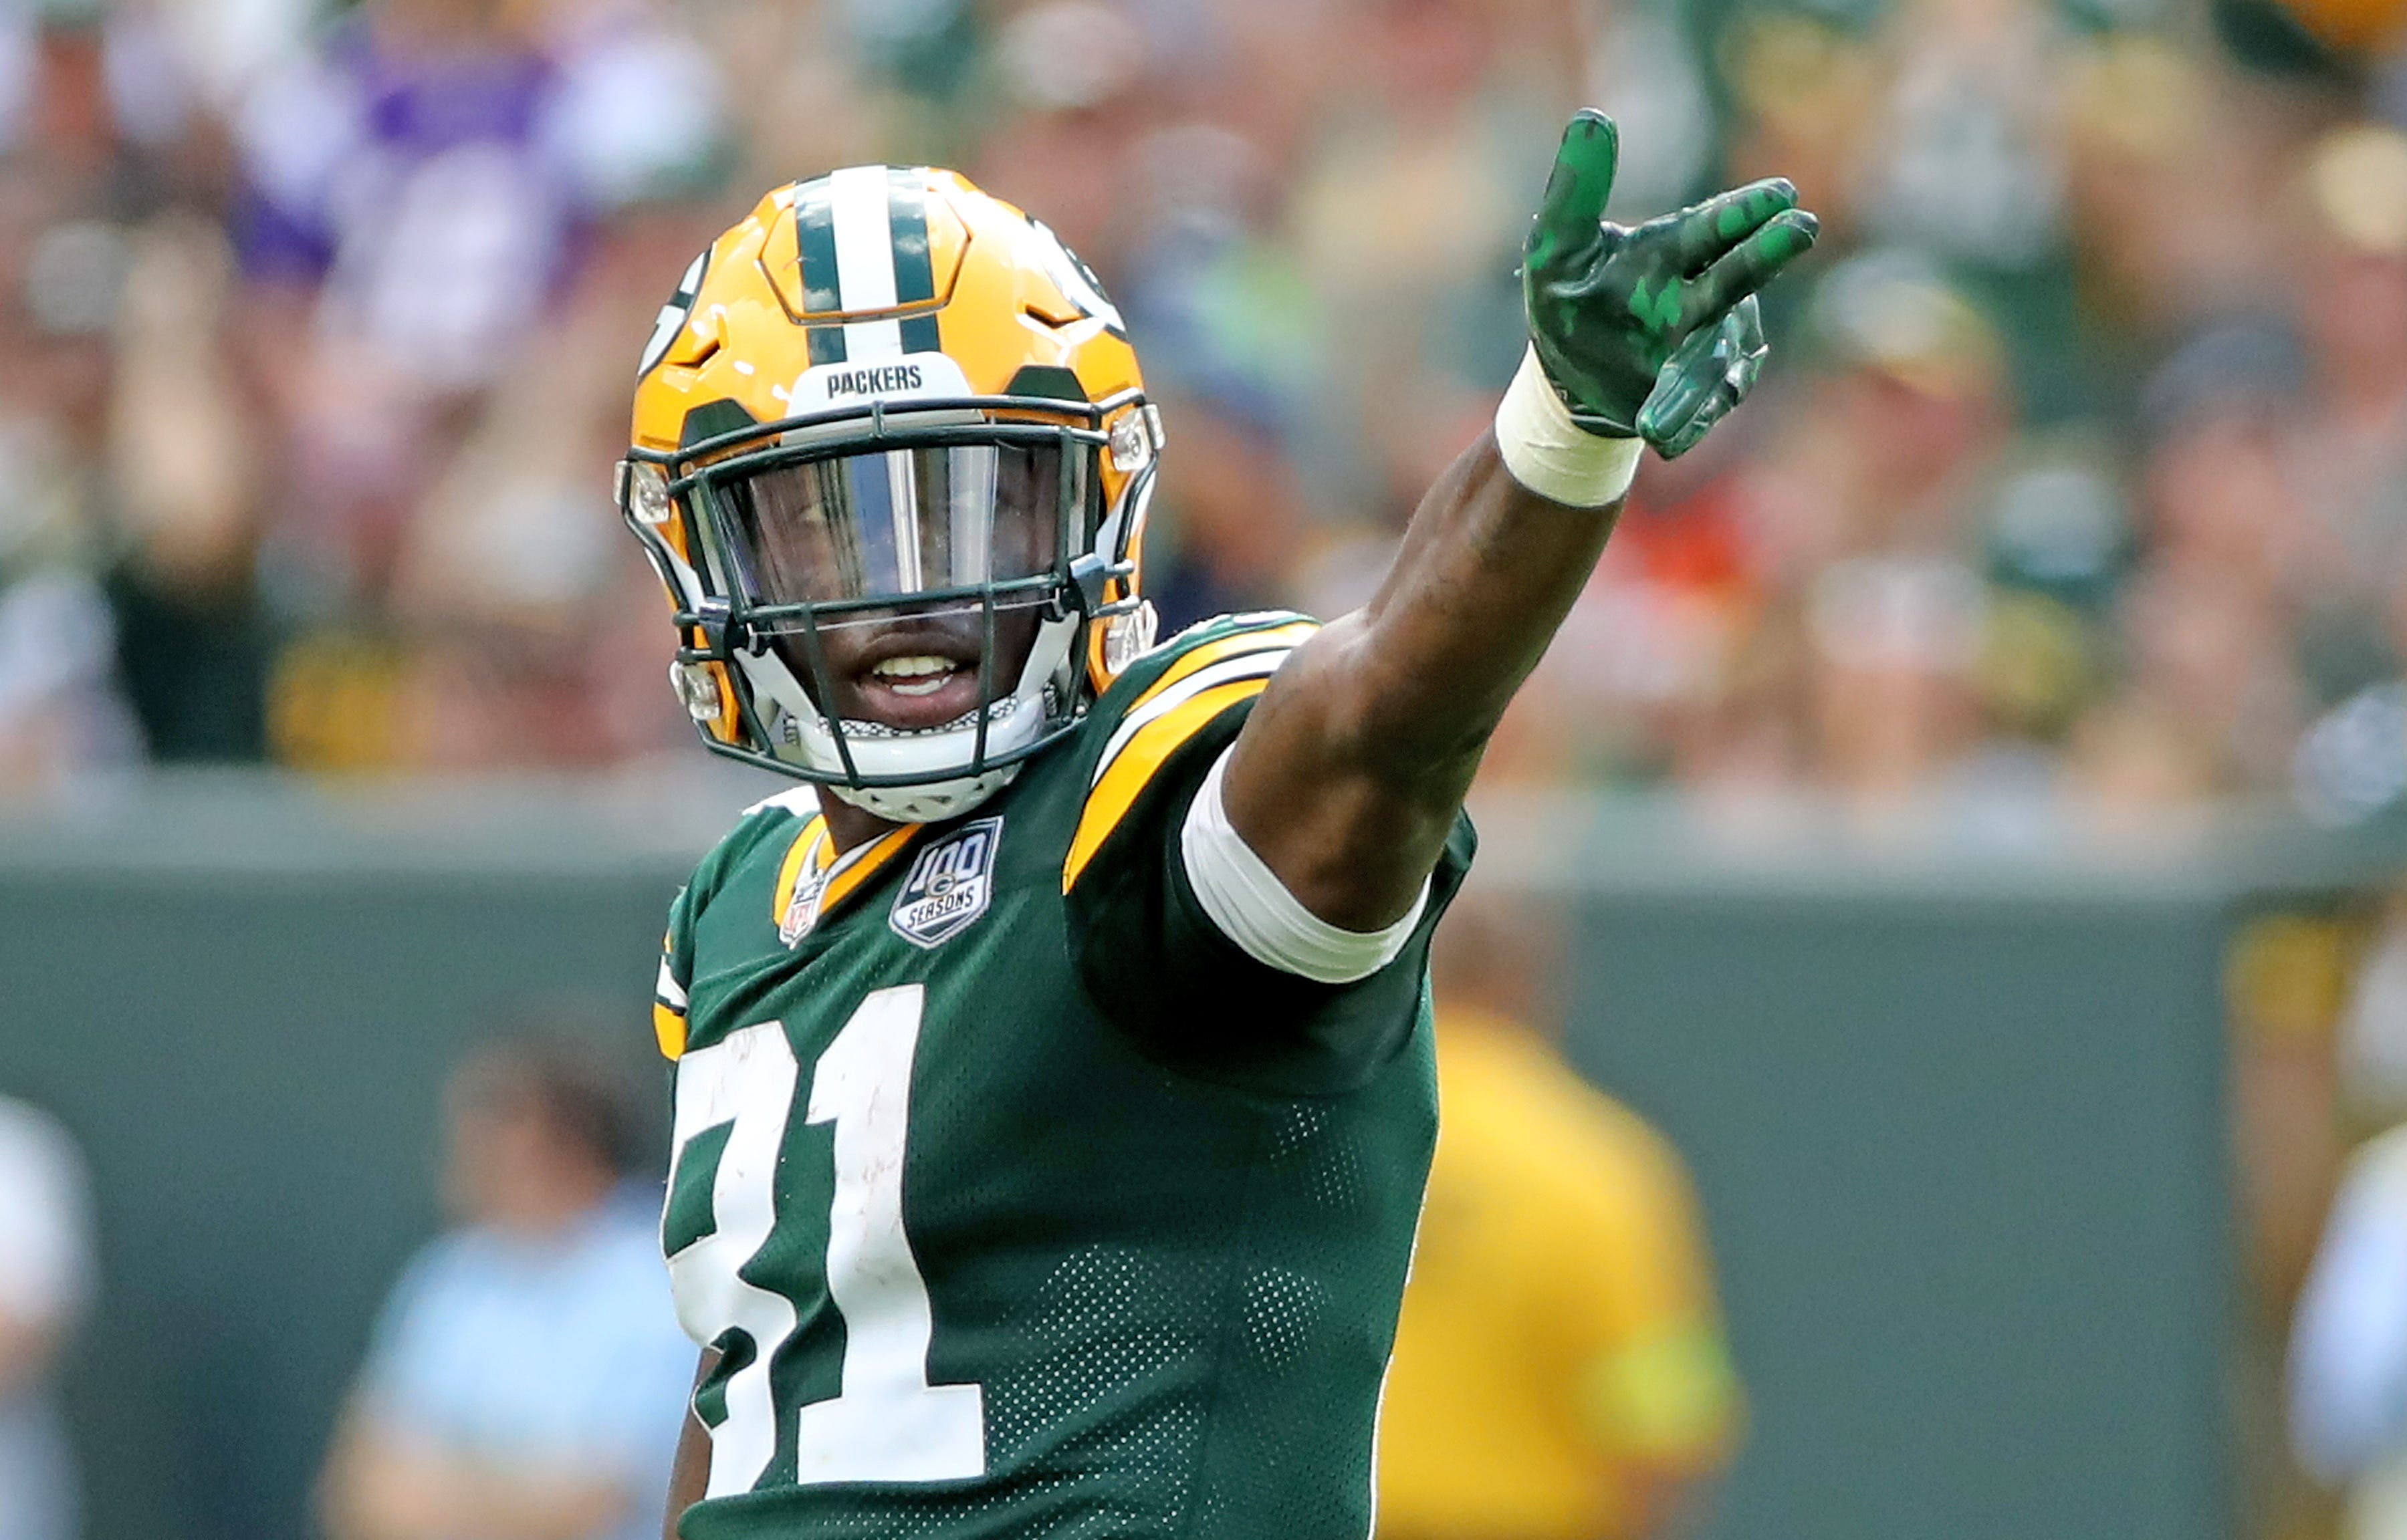 Packers WR Geronimo Allison gets life advice from comedian Steve Harvey on talk show